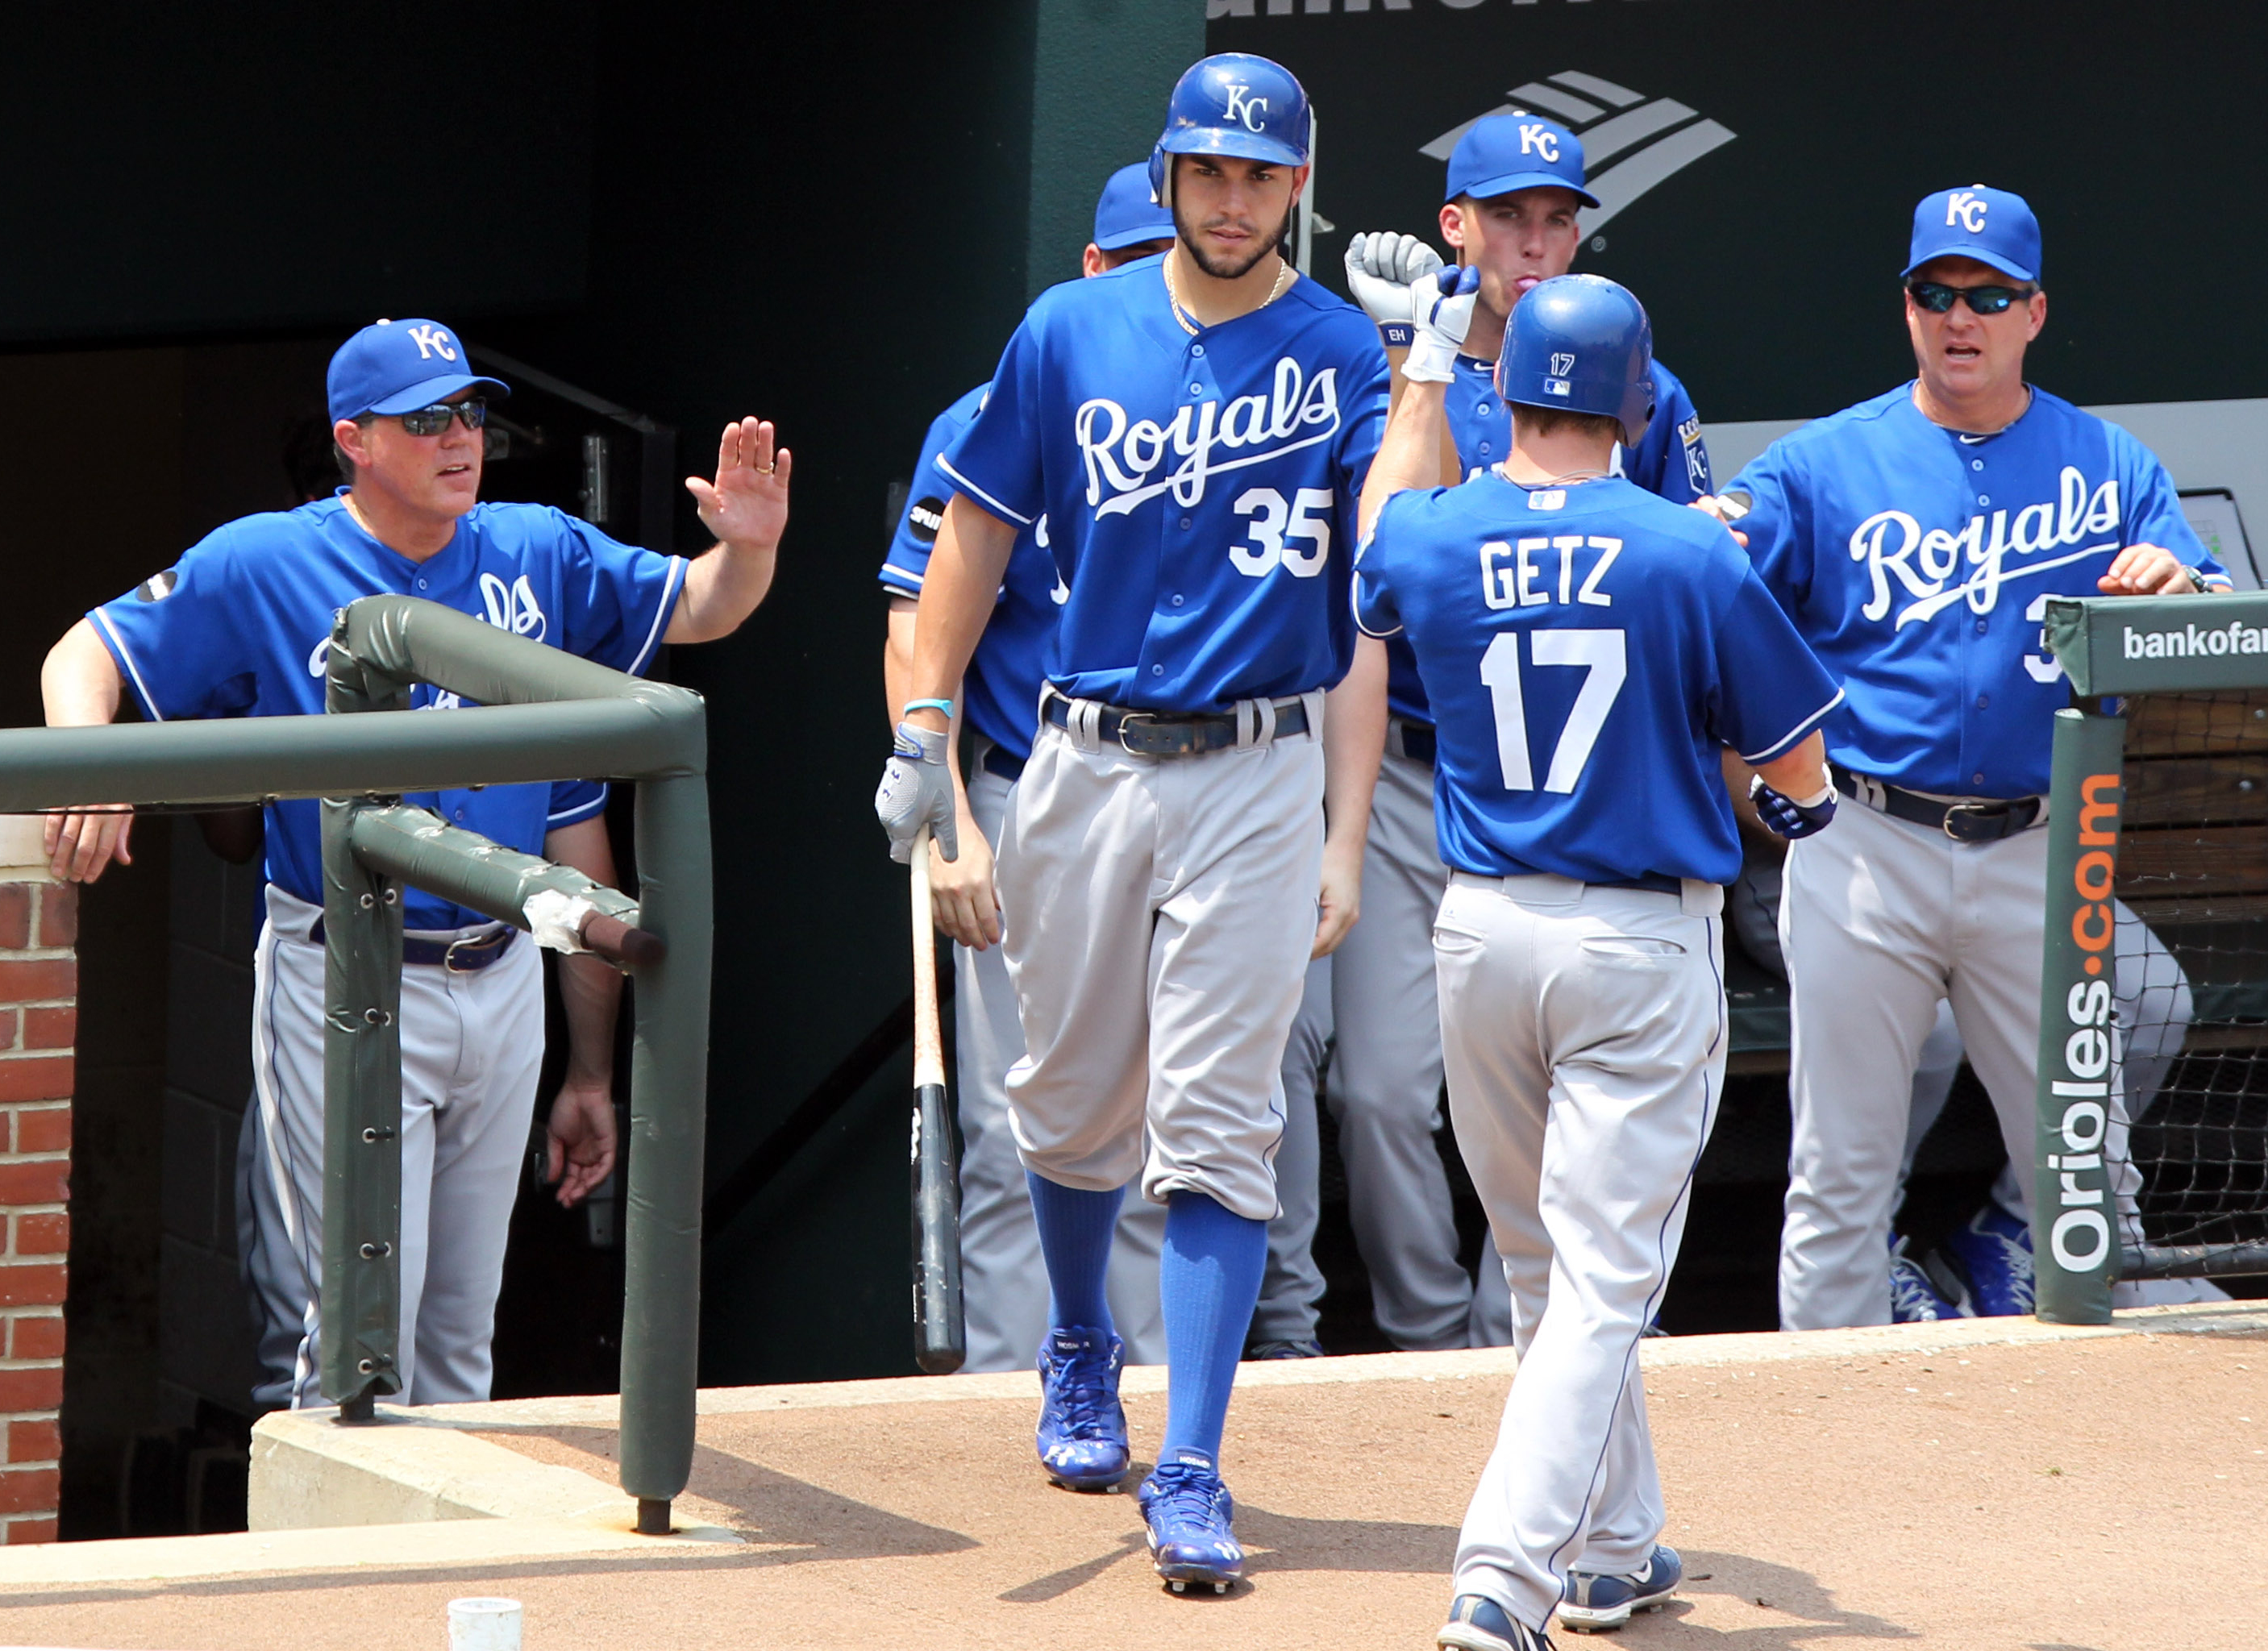 Kansas City Royals players